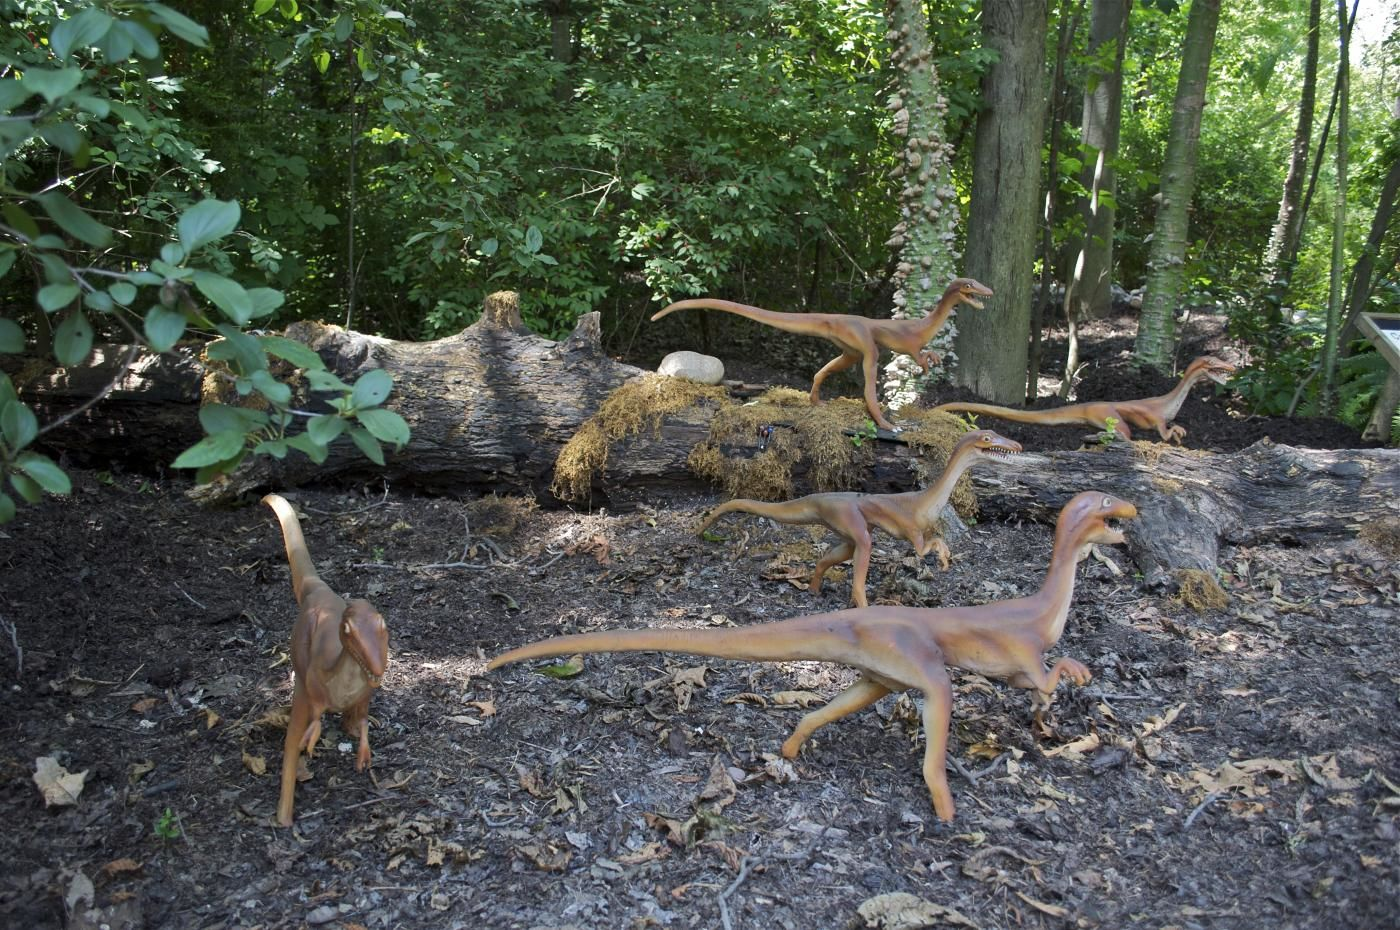 The zoo will feature life-size animatronic replicas of various dinos. (Courtesy National Zoo)